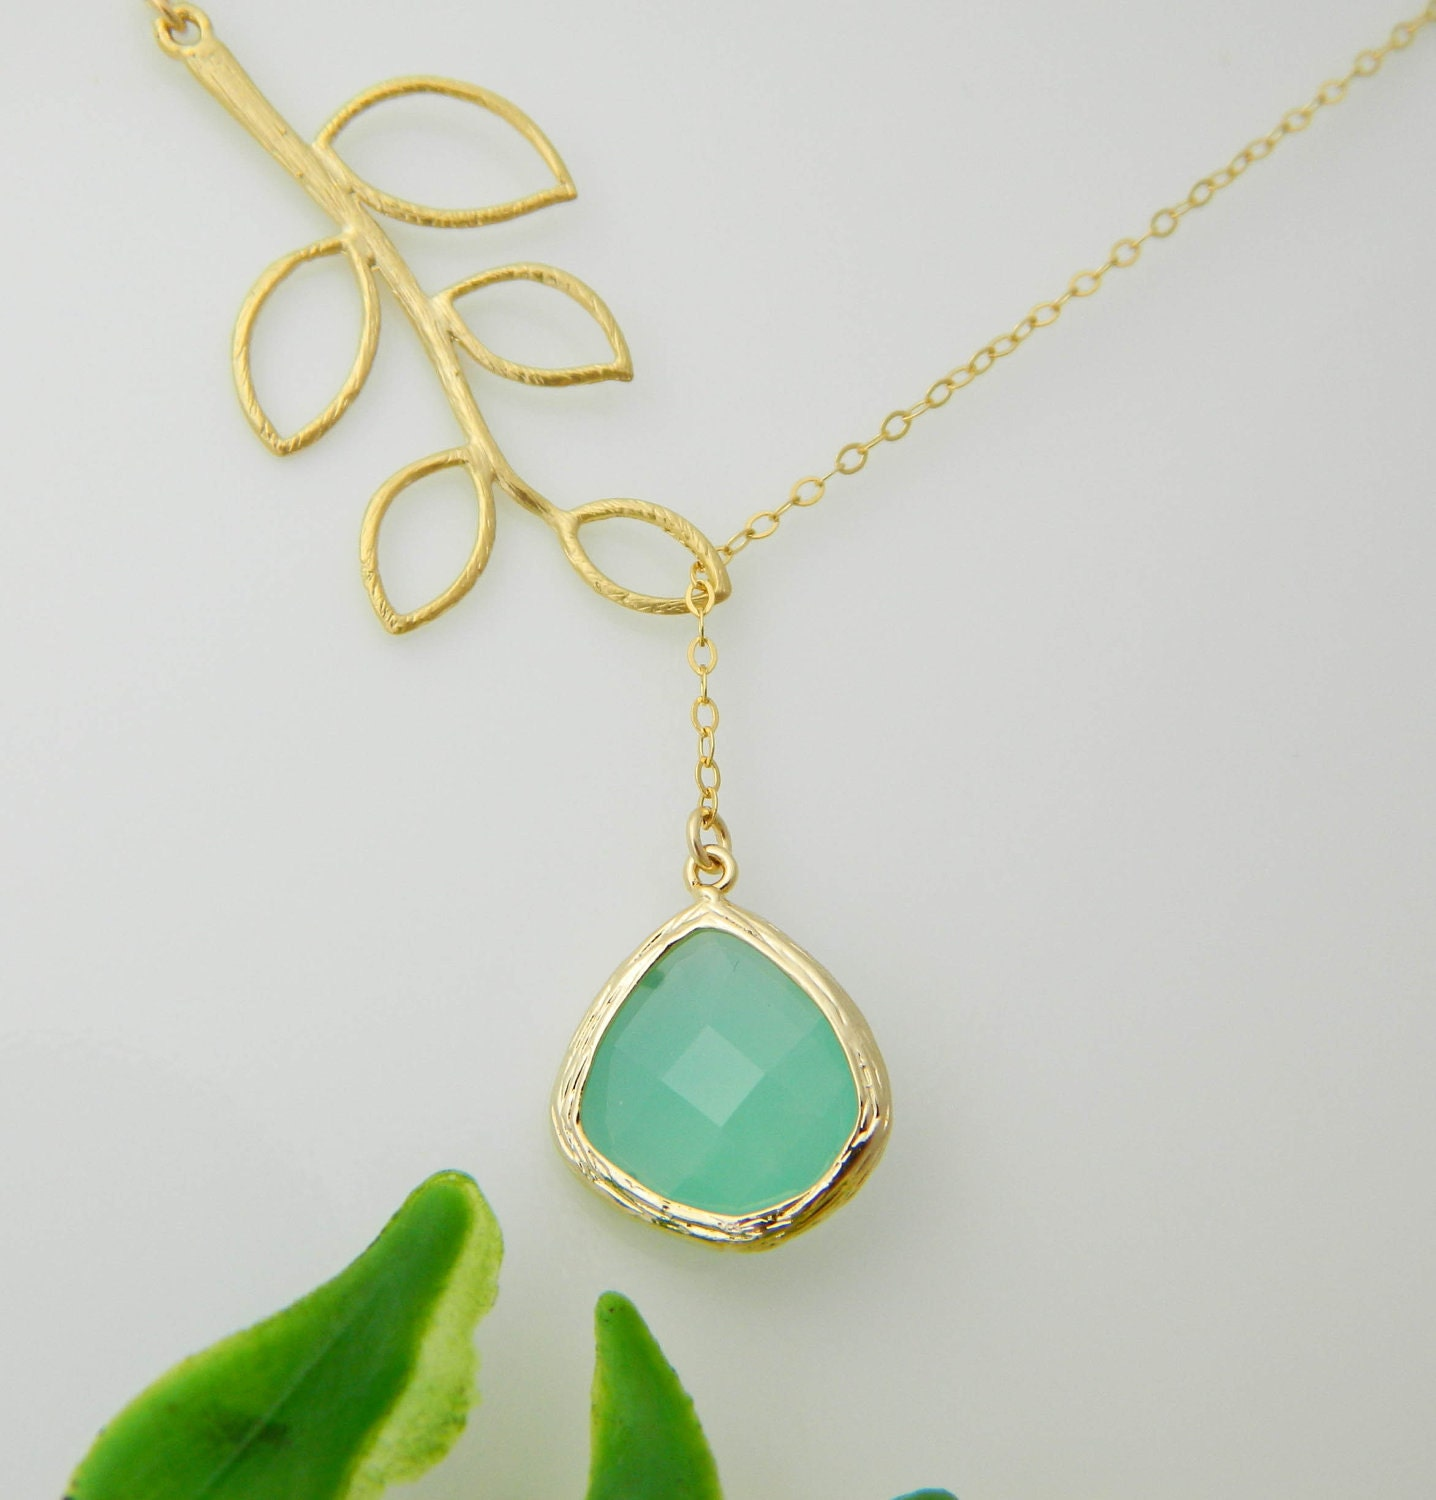 Aqua Necklace, Lariat Leaf Necklace, Gold Framed, Bridesmaid Necklace, Wedding Jewelry, Personalized Bridesmaid Gift